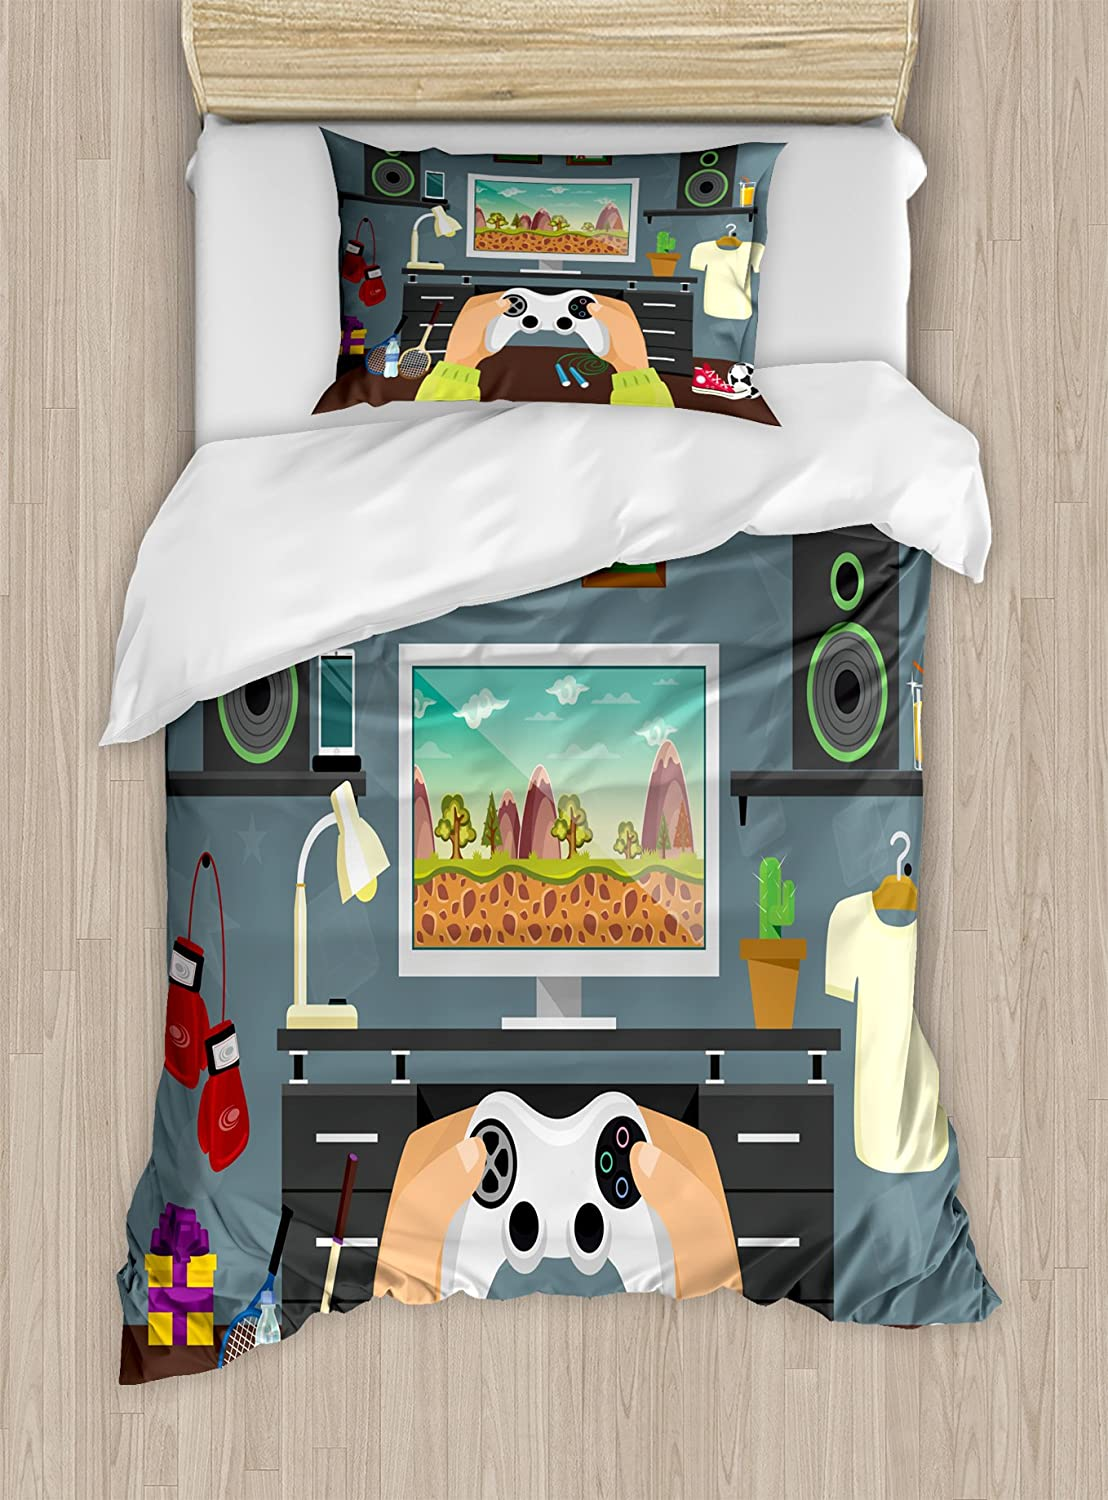 Lunarable Gamer Duvet Cover Set, Gaming Guy in His Flat with Diplomas Loud Speakers Boxing Gloves Jump Rope and Trophy, Decorative 2 Piece Bedding Set with 1 Pillow Sham, Twin Size, Dark Grey